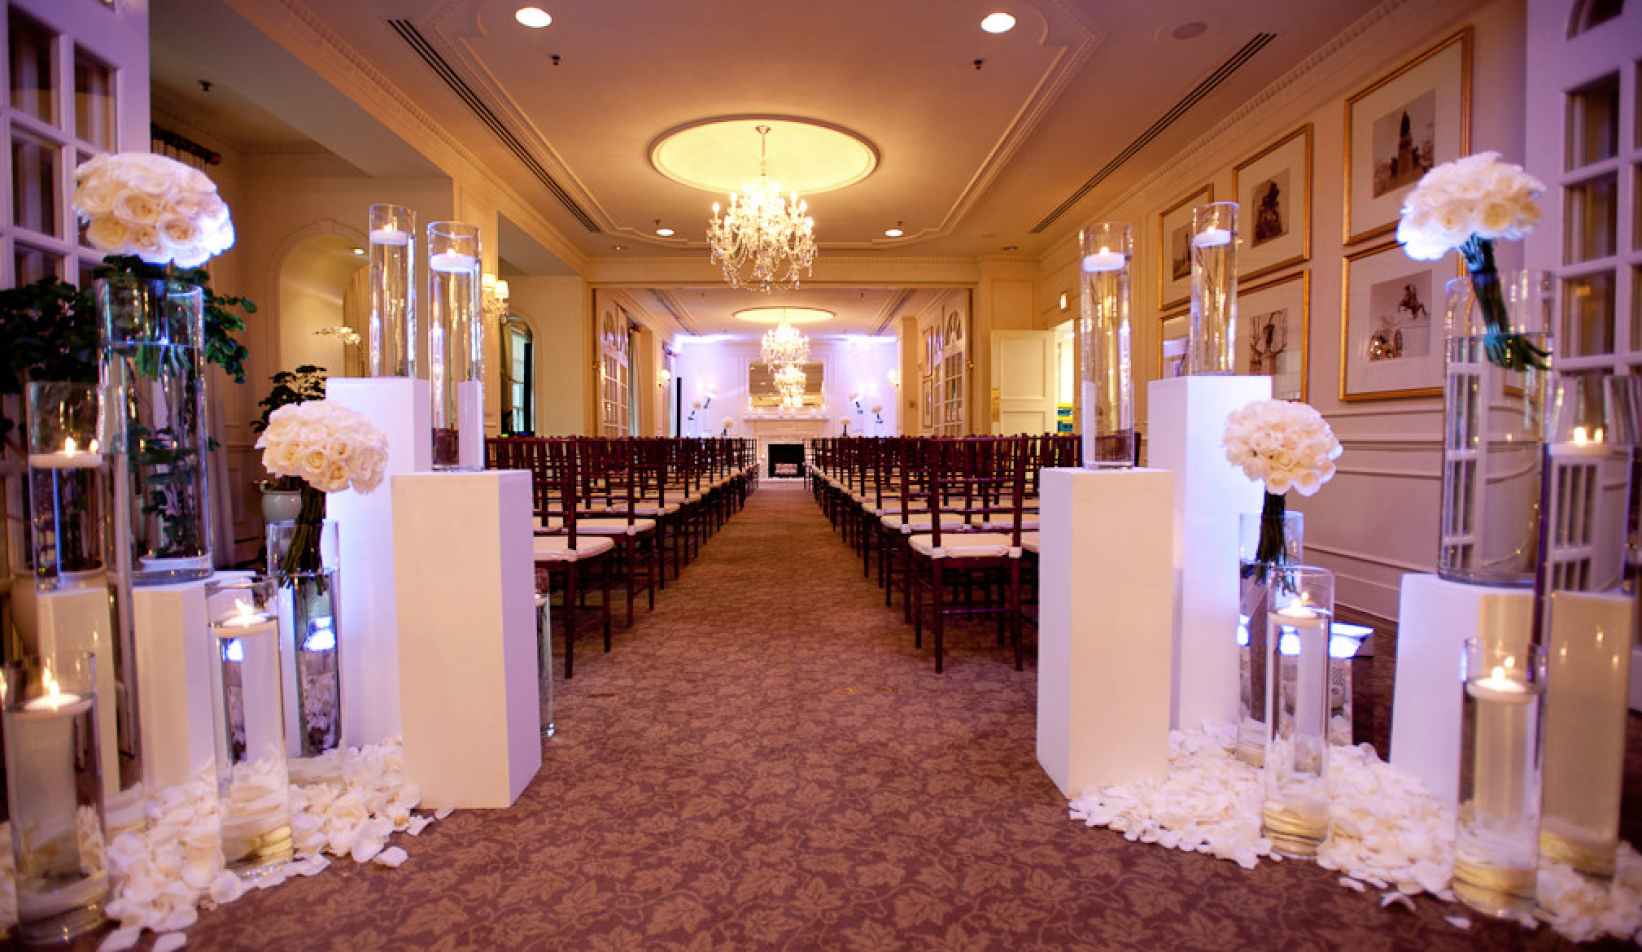 Wedding venue decoration ideas   Super Chic Wedding Reception and Ceremony Ideas From Edge Flowers